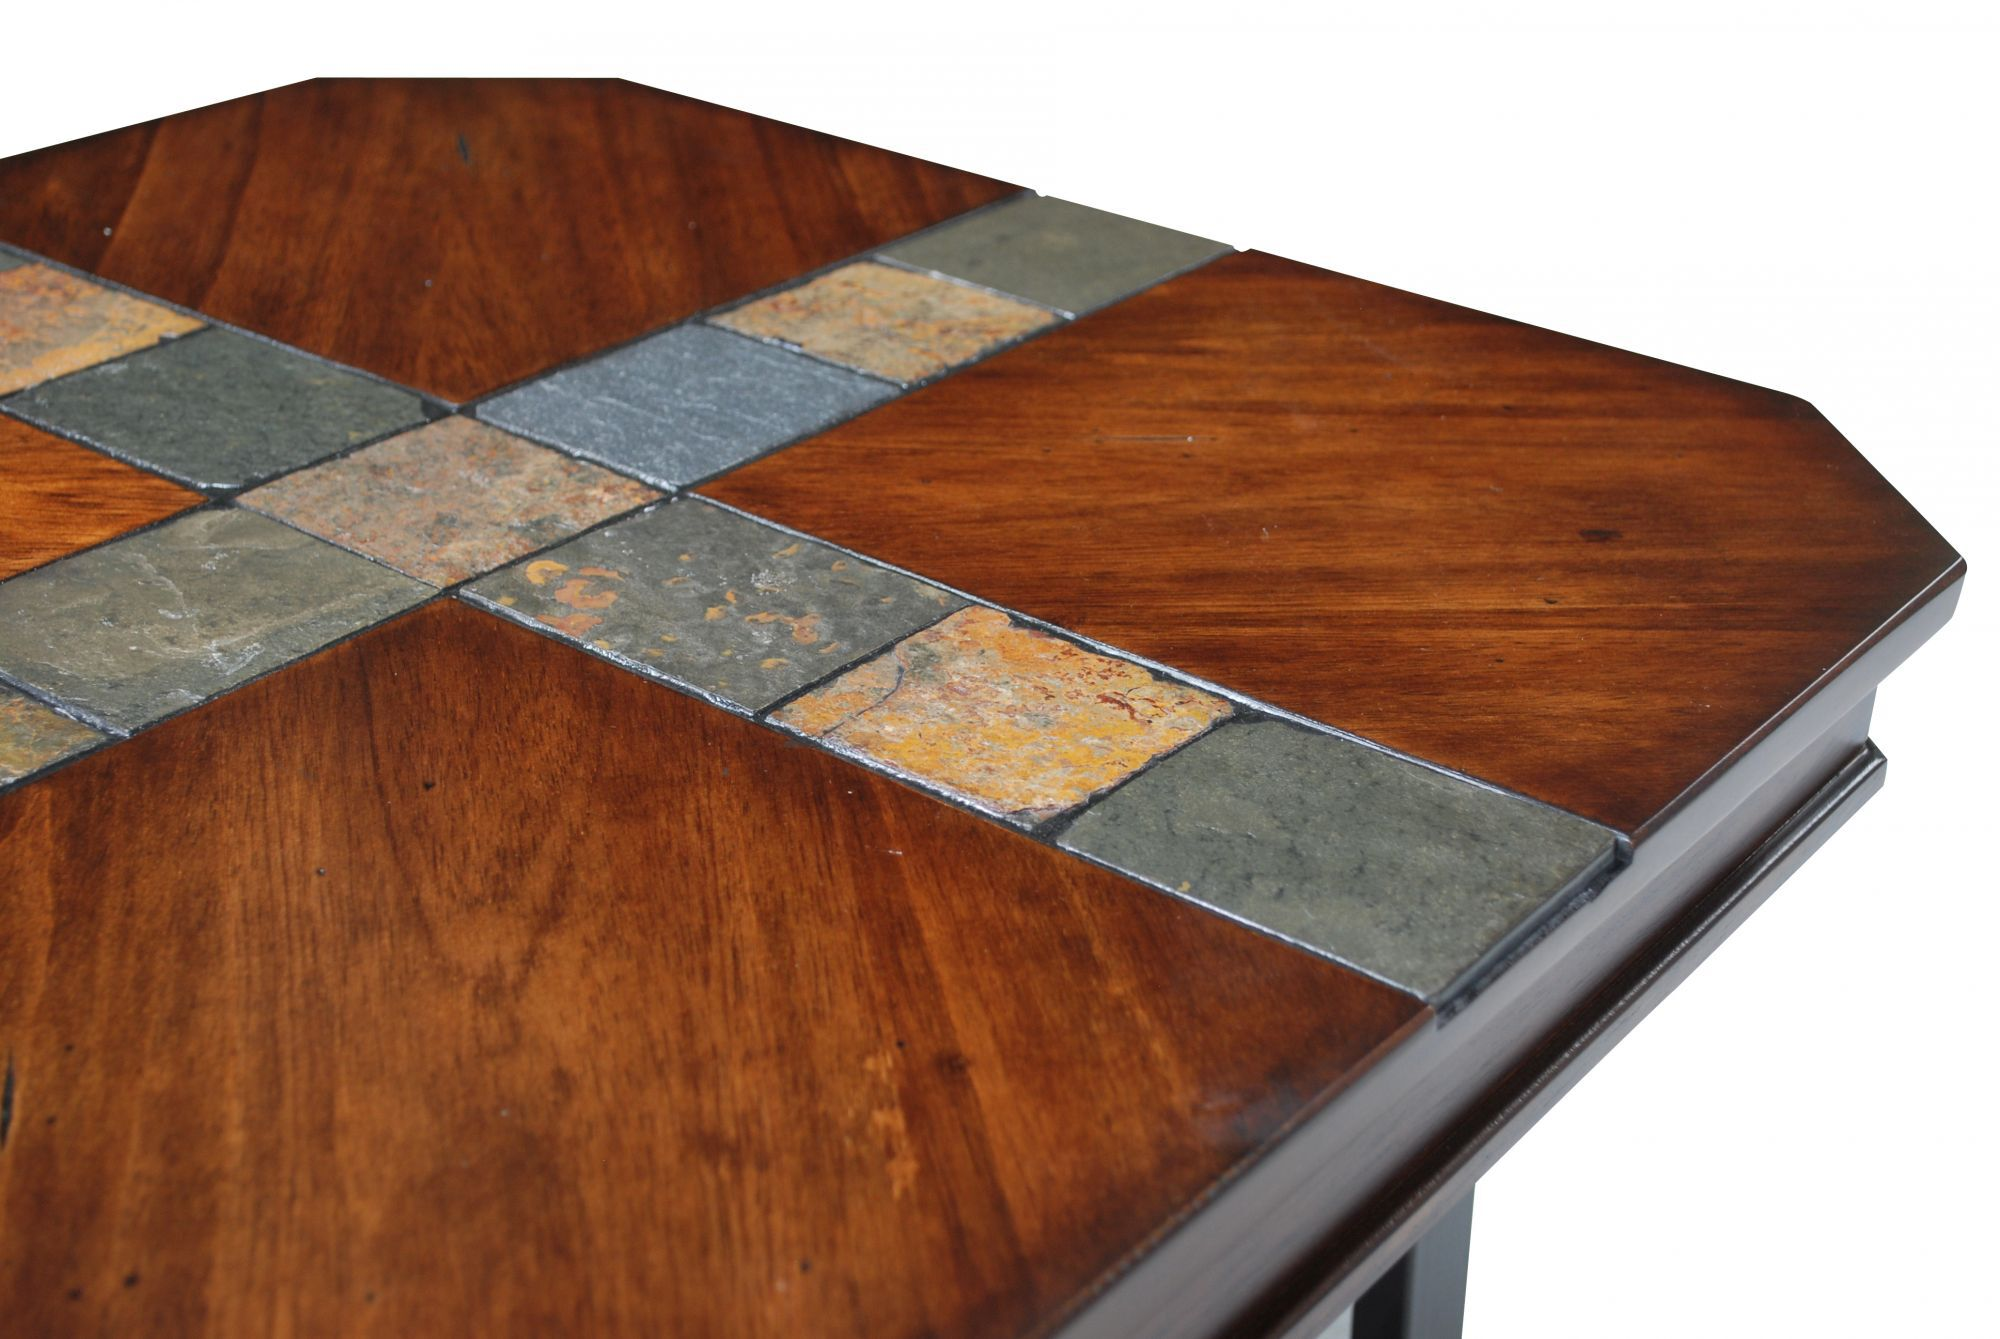 Three Piece Coffee Table Set In Brown